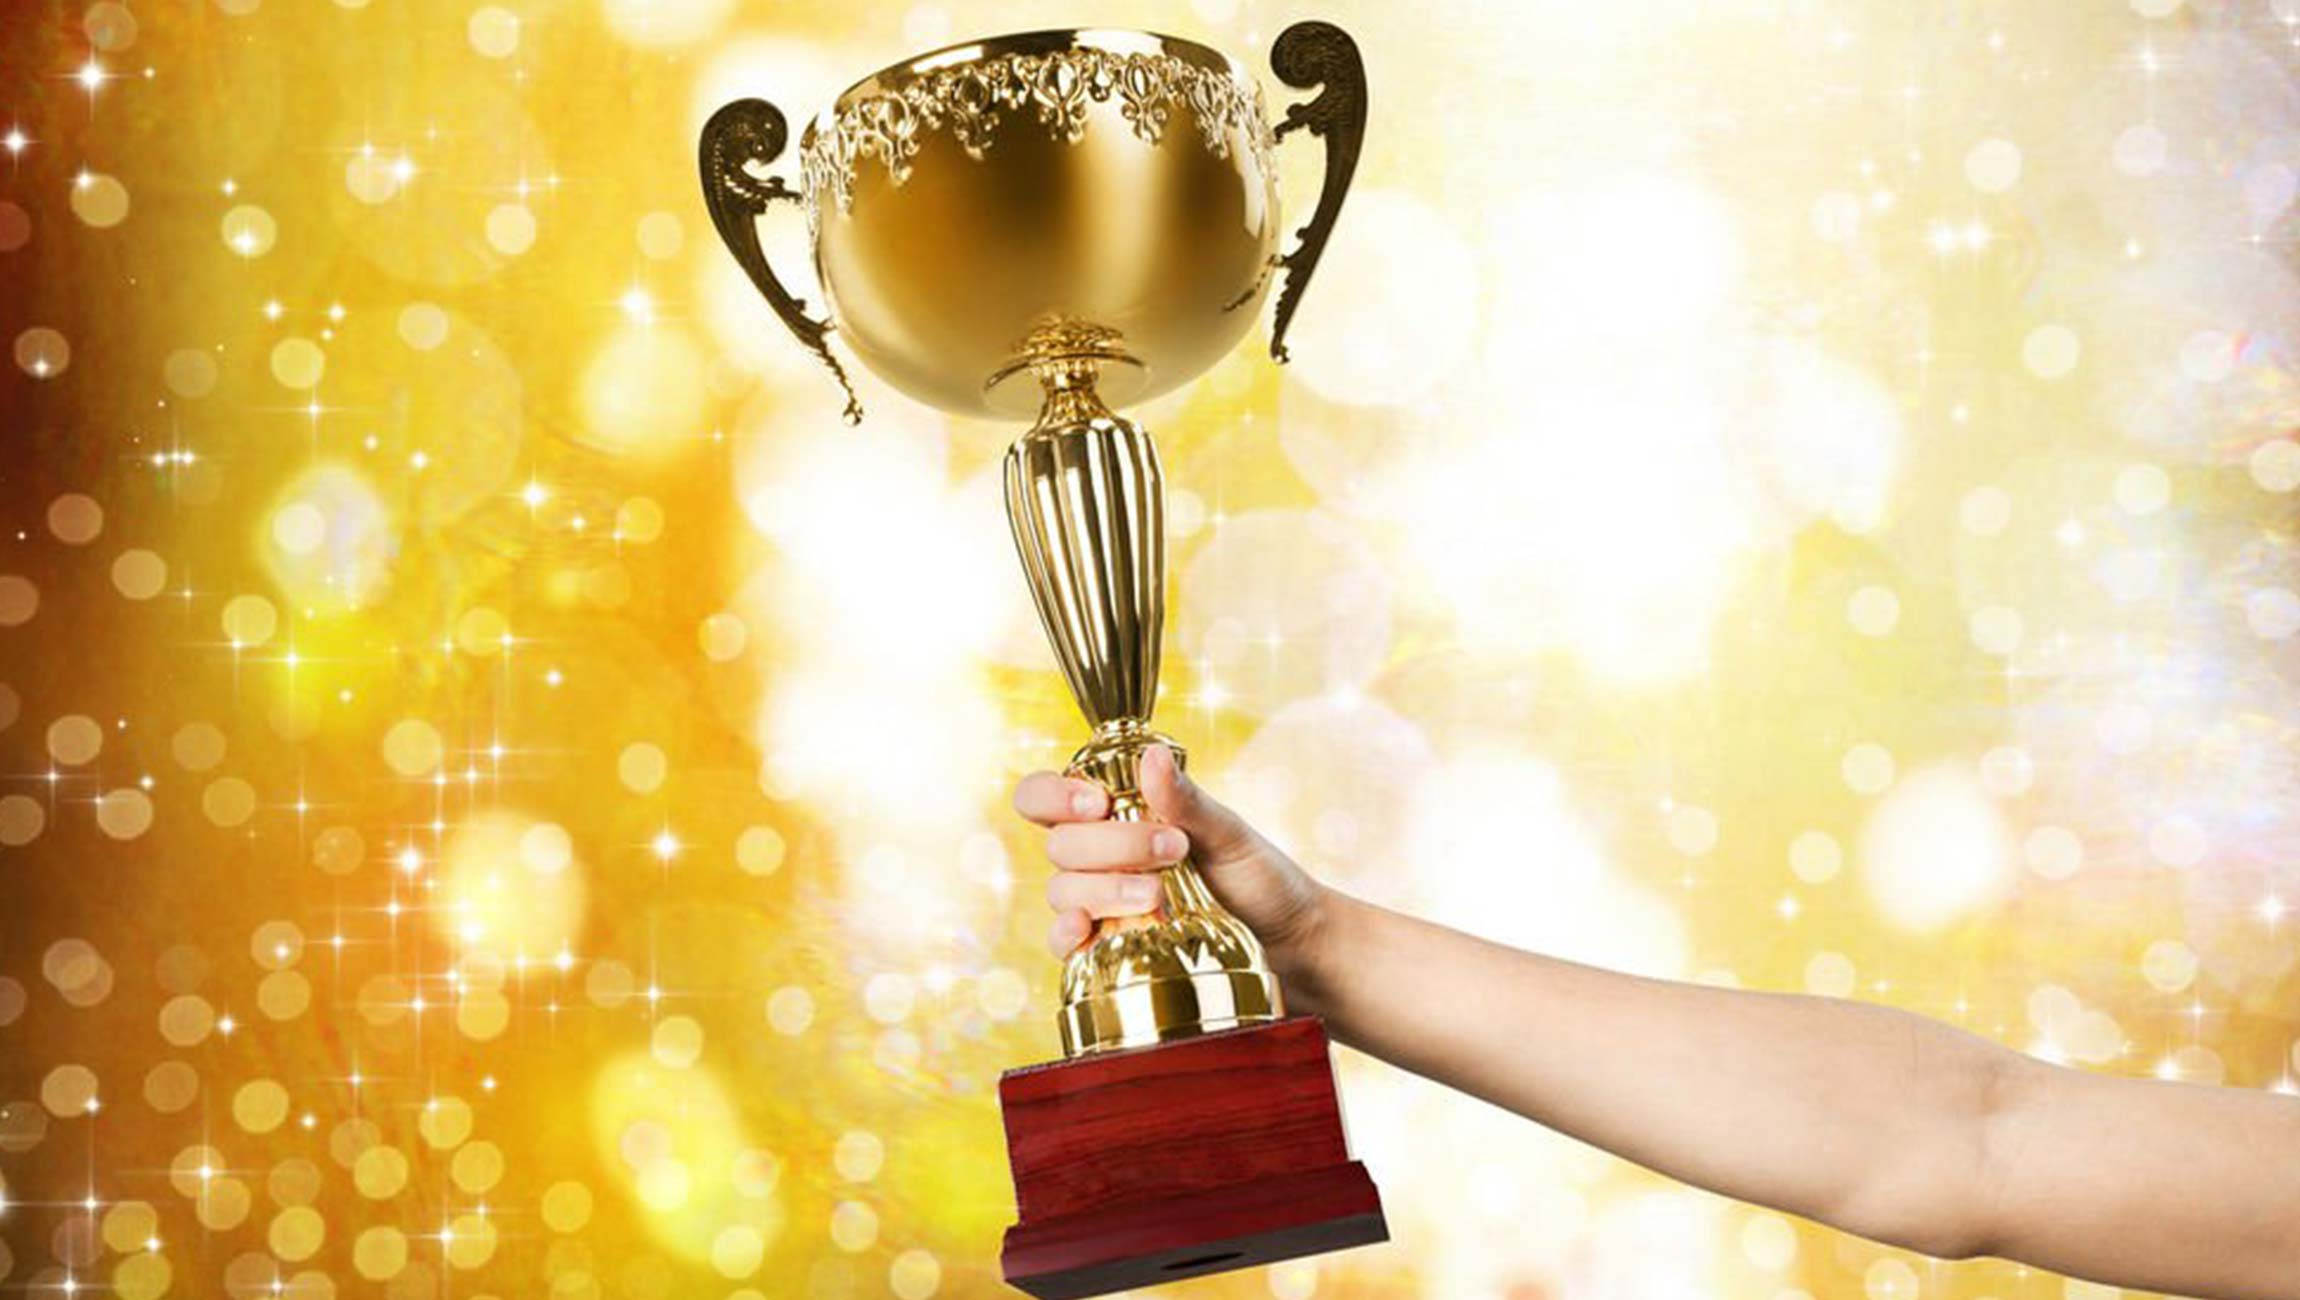 UserTesting Recognition Continues as a Top Workplace and Fastest Growing Company 1